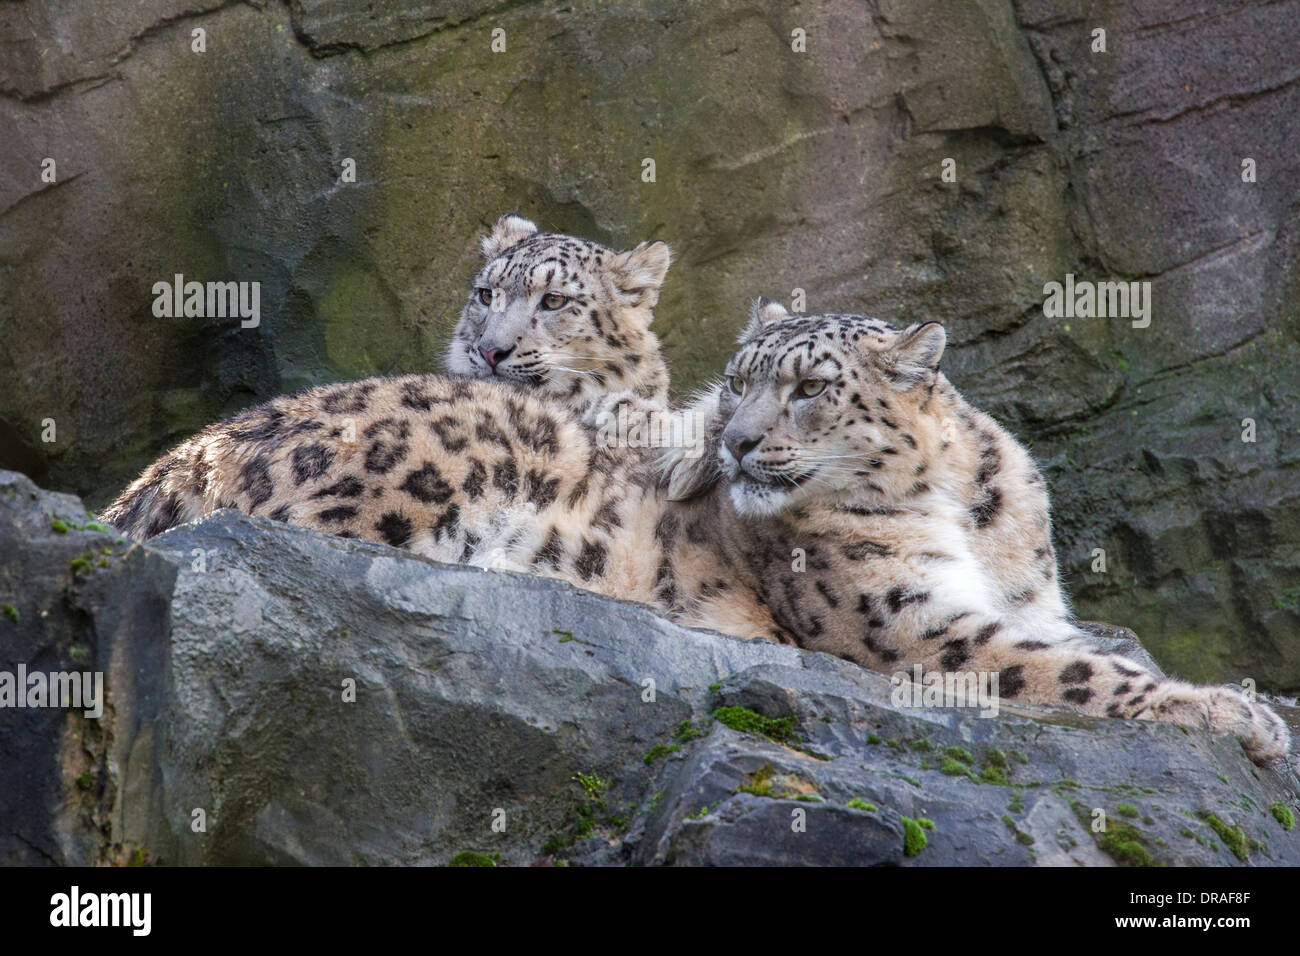 Snow Leopard with her 9 months old cub. - Stock Image